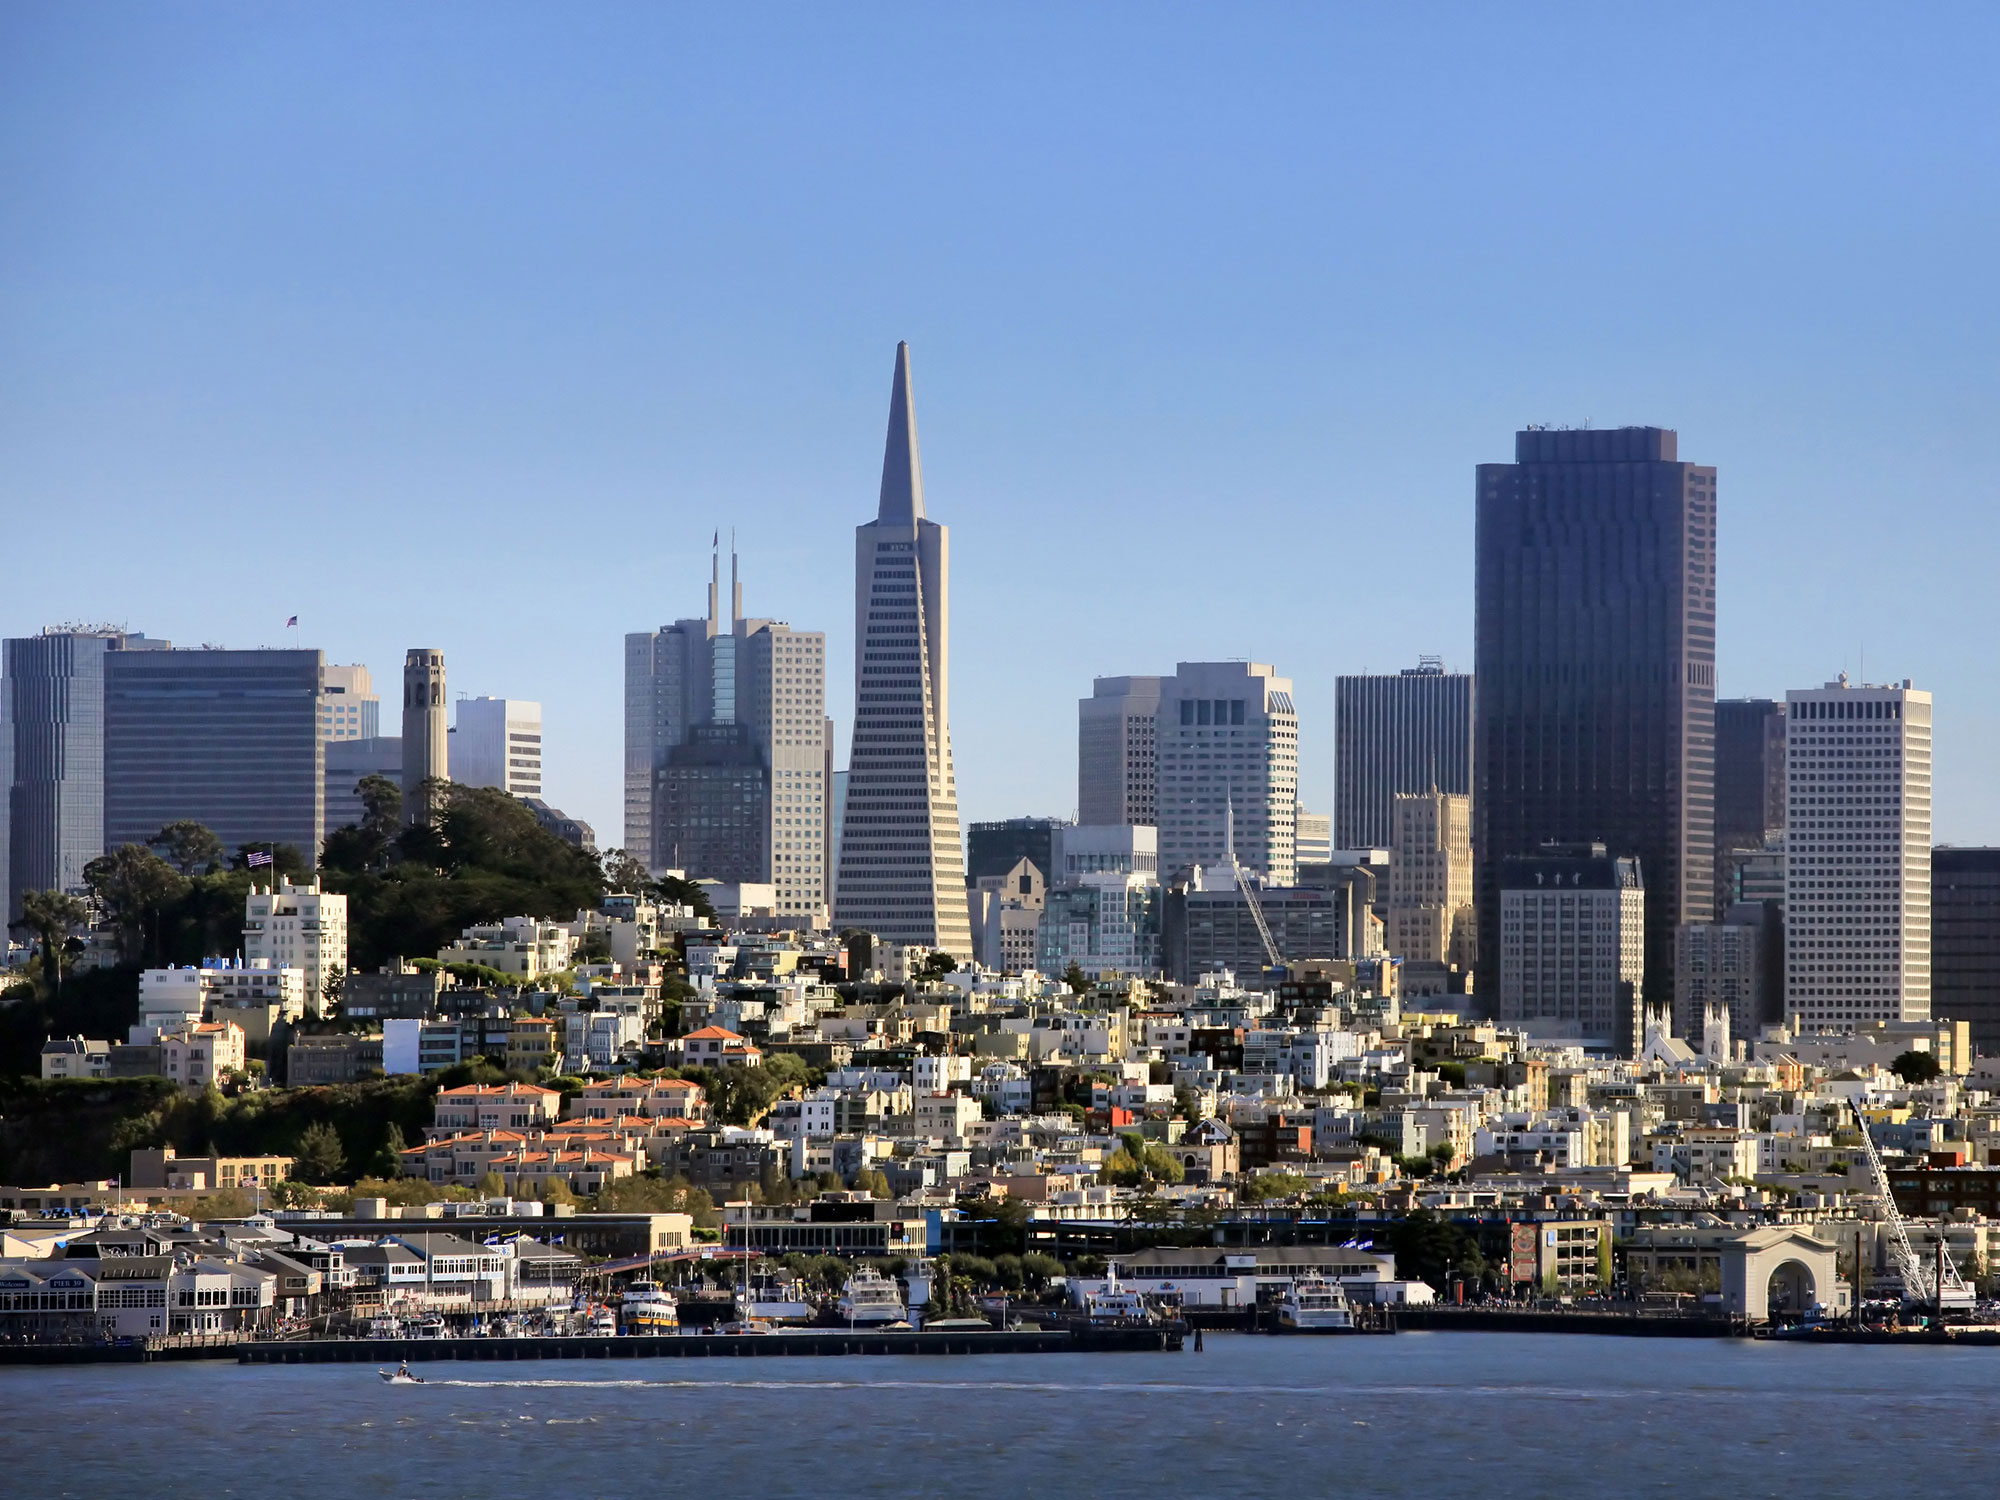 San-Francisco-skyline-in-California-where-Hartfield-Titus-&-Donnelly-has-offices.jpg